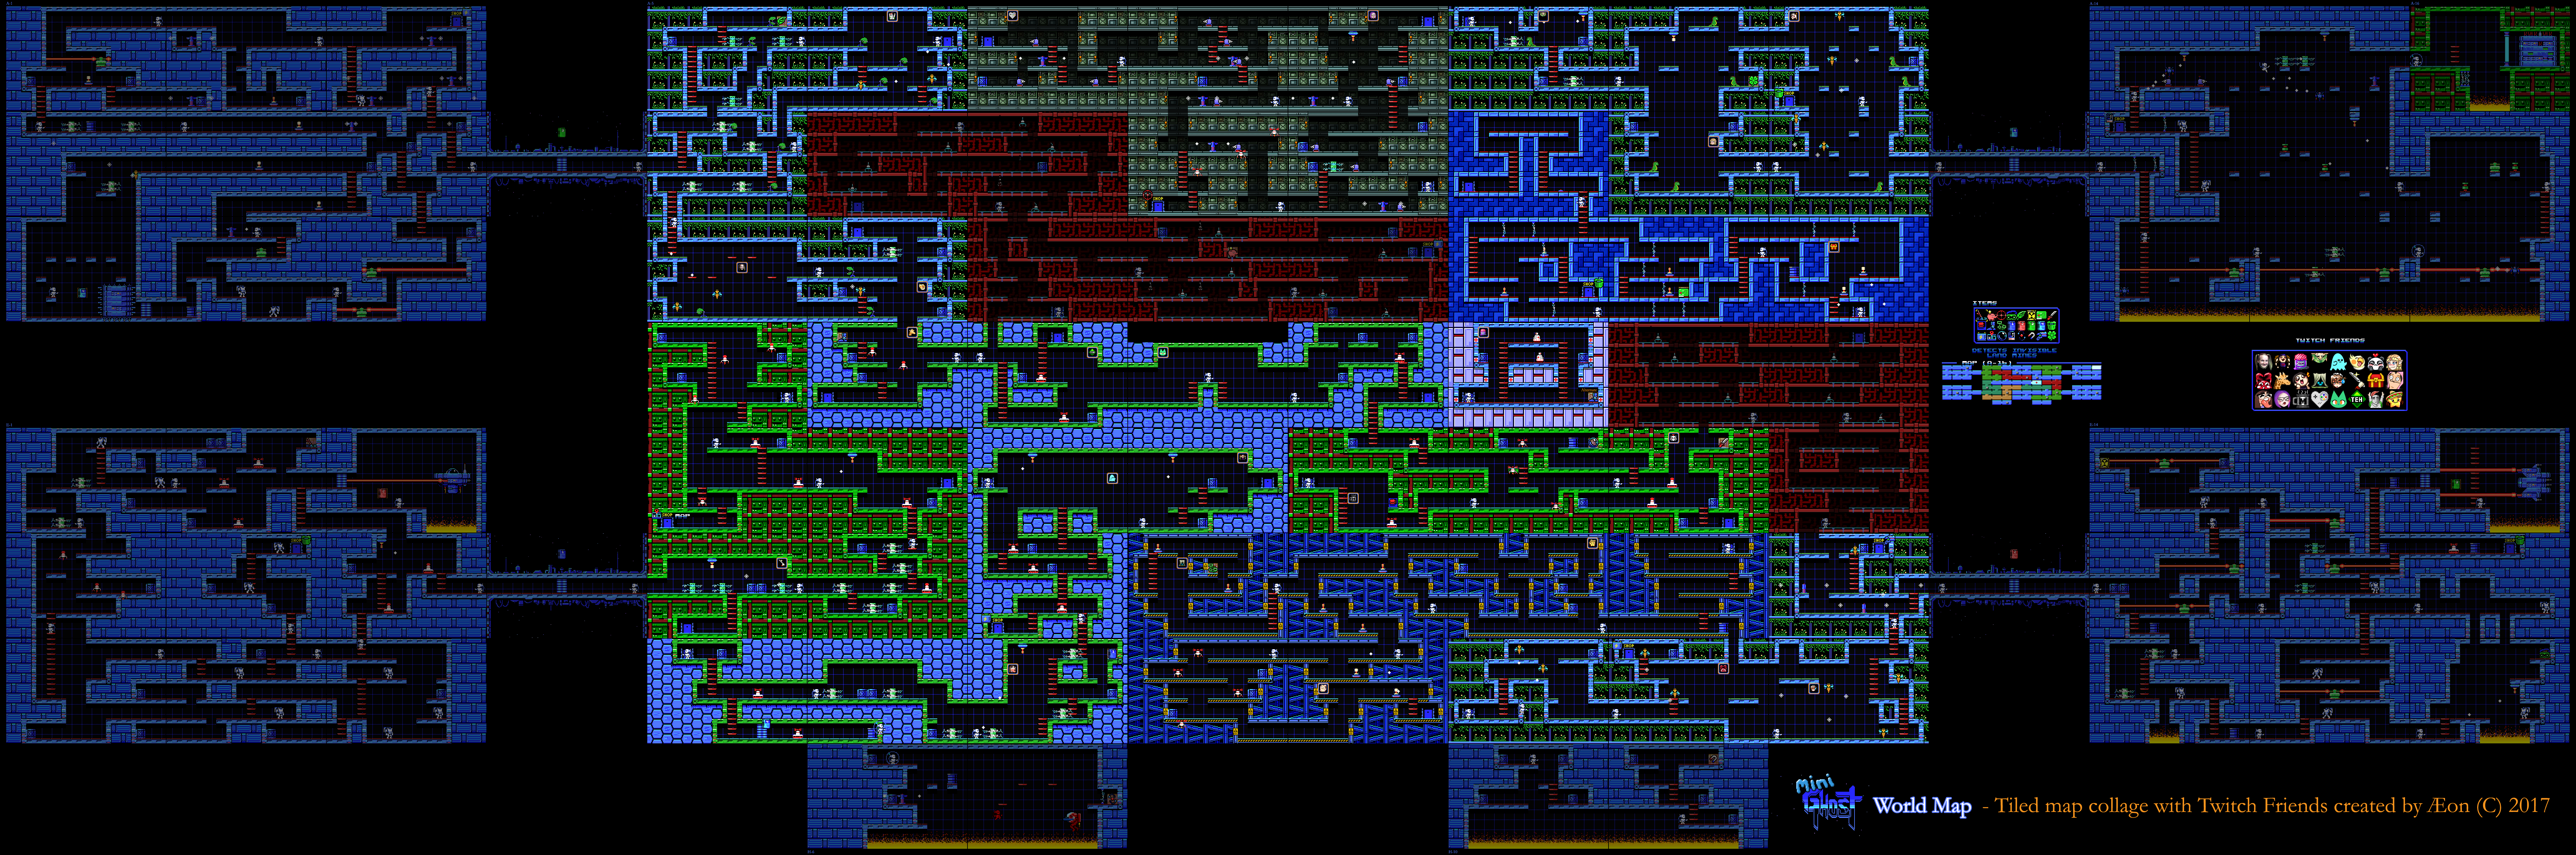 Steam community guide mini ghost detailed world map with here the full quality mini ghost world map with twitch friends image that has 8k resolution 8262x2742 pixels based on room tiles that had 2x2 pixel gumiabroncs Images